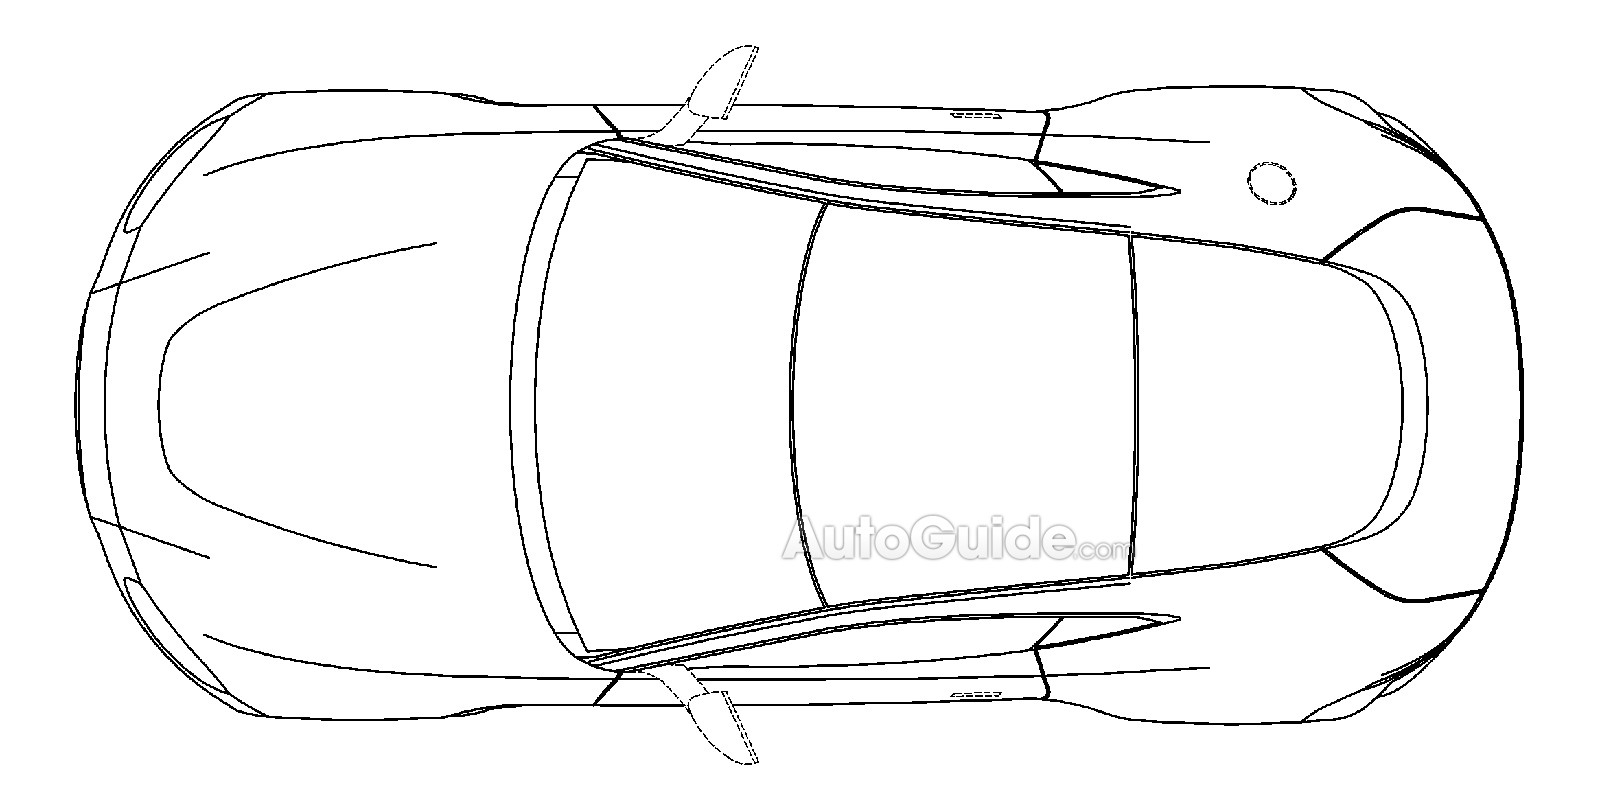 aston martin vantage 2018 side view. 2018 Aston Martin Vantage Patent Drawing Side View D